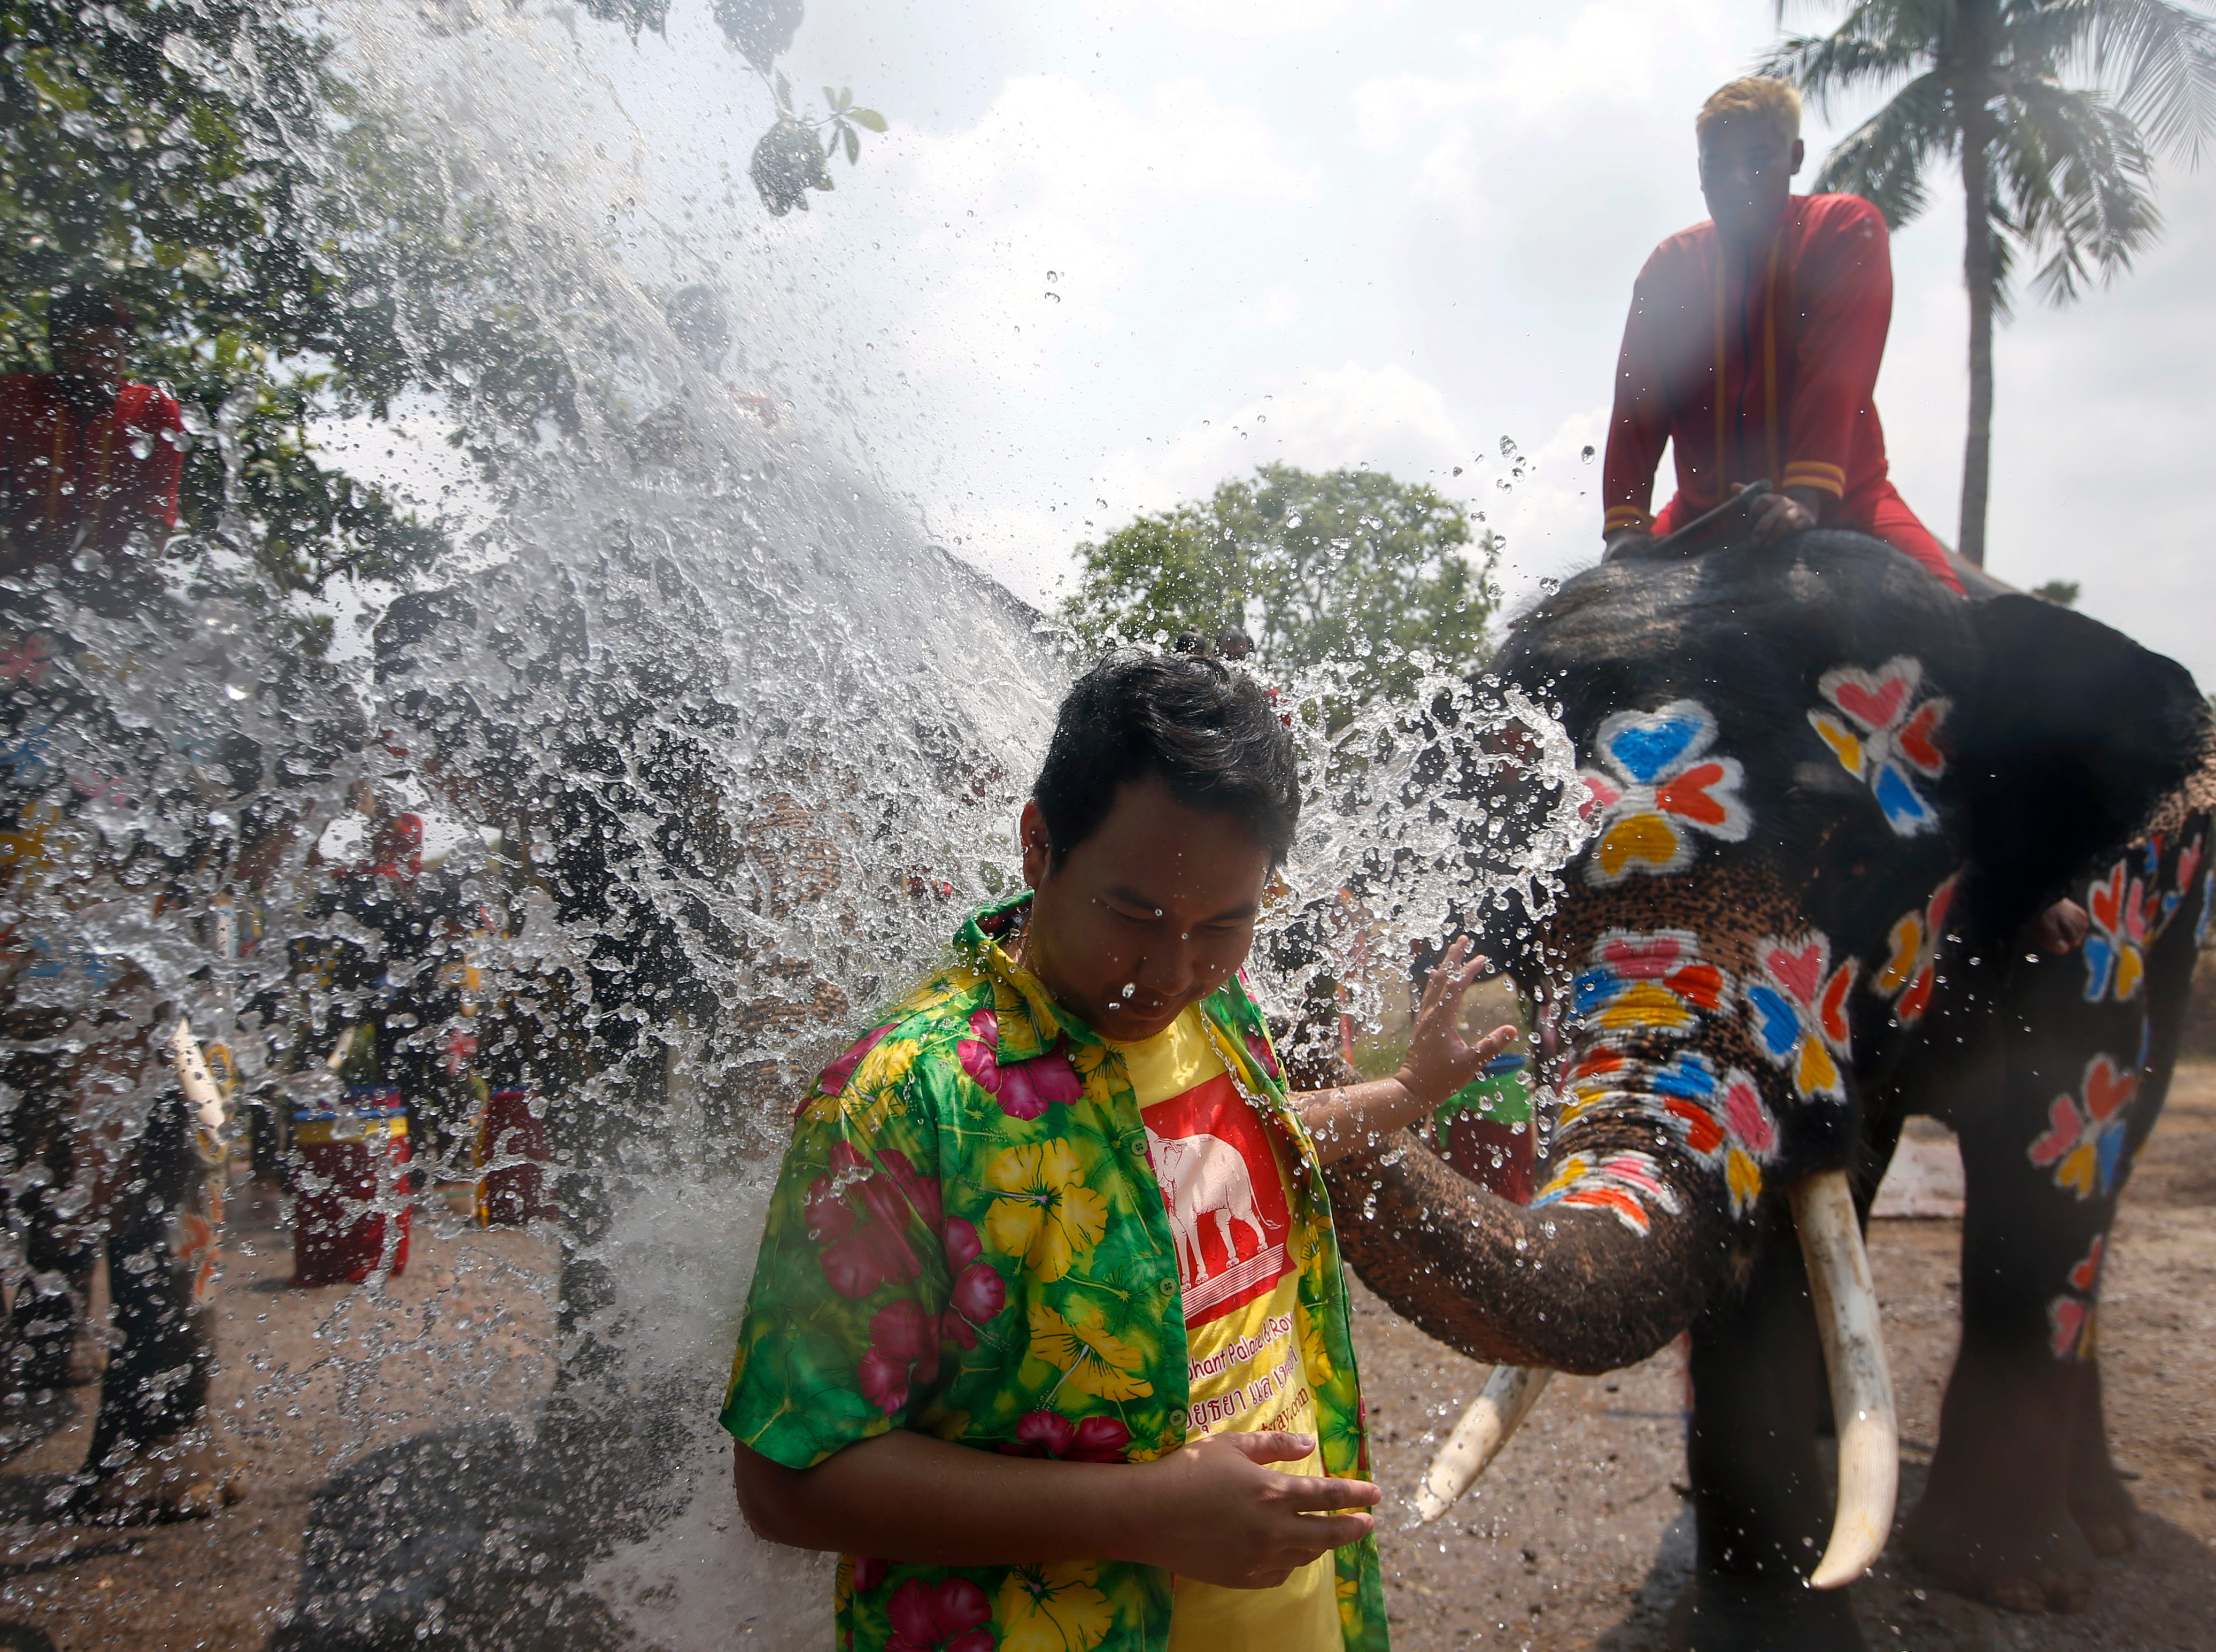 A Thai reveler is sprayed with water thrown by an elephant during a preview of the Songkran Festival celebration, also known as the Water Festival, in the city of Ayutthaya, Thailand on April 11, 2019.